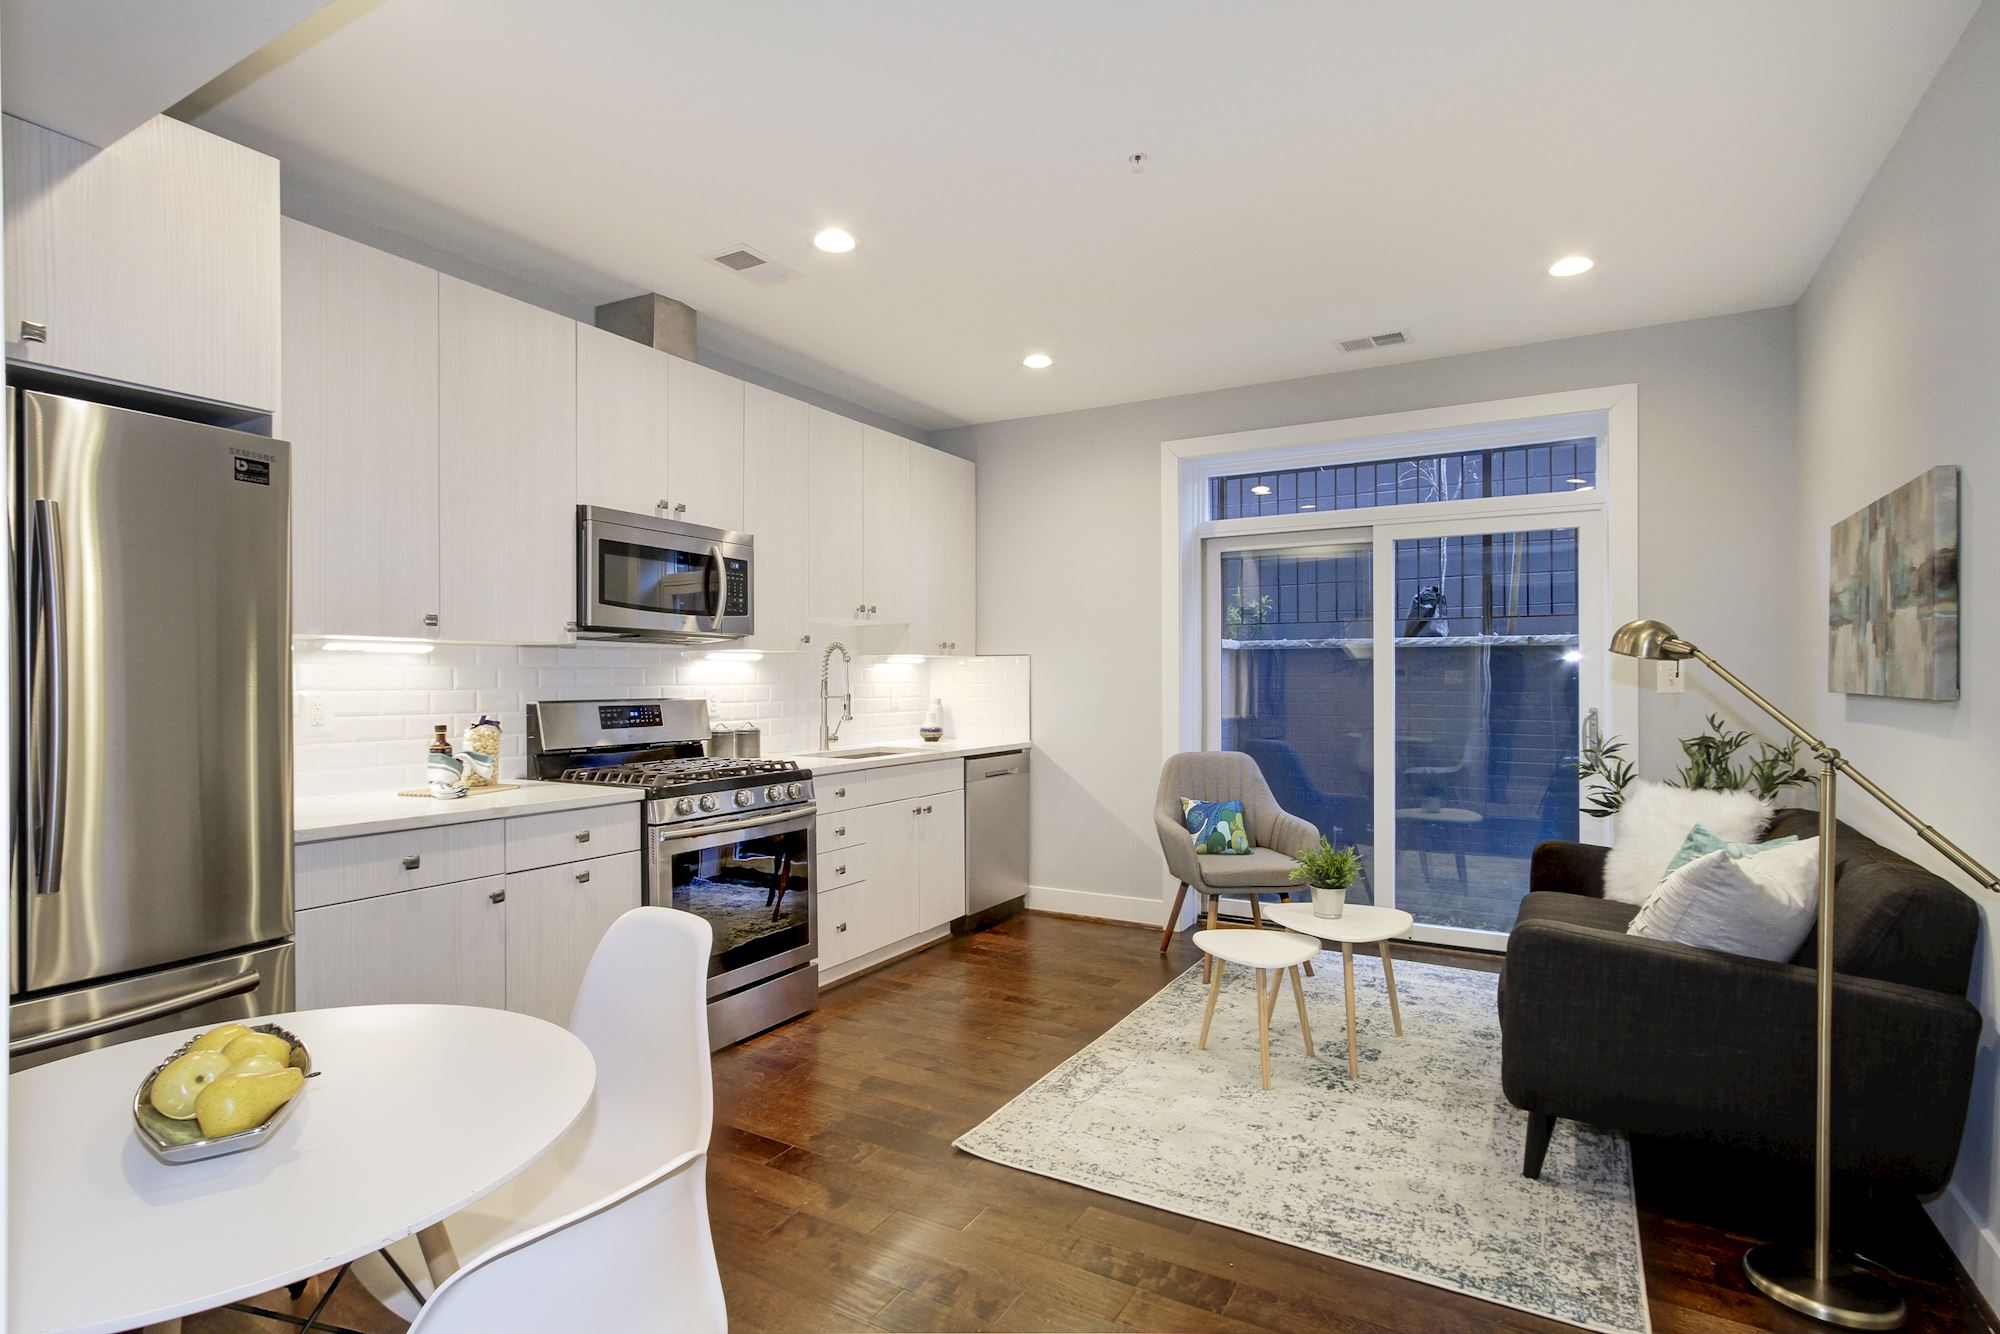 1 BR | 1 BA - ALL UNDER CONTRACT